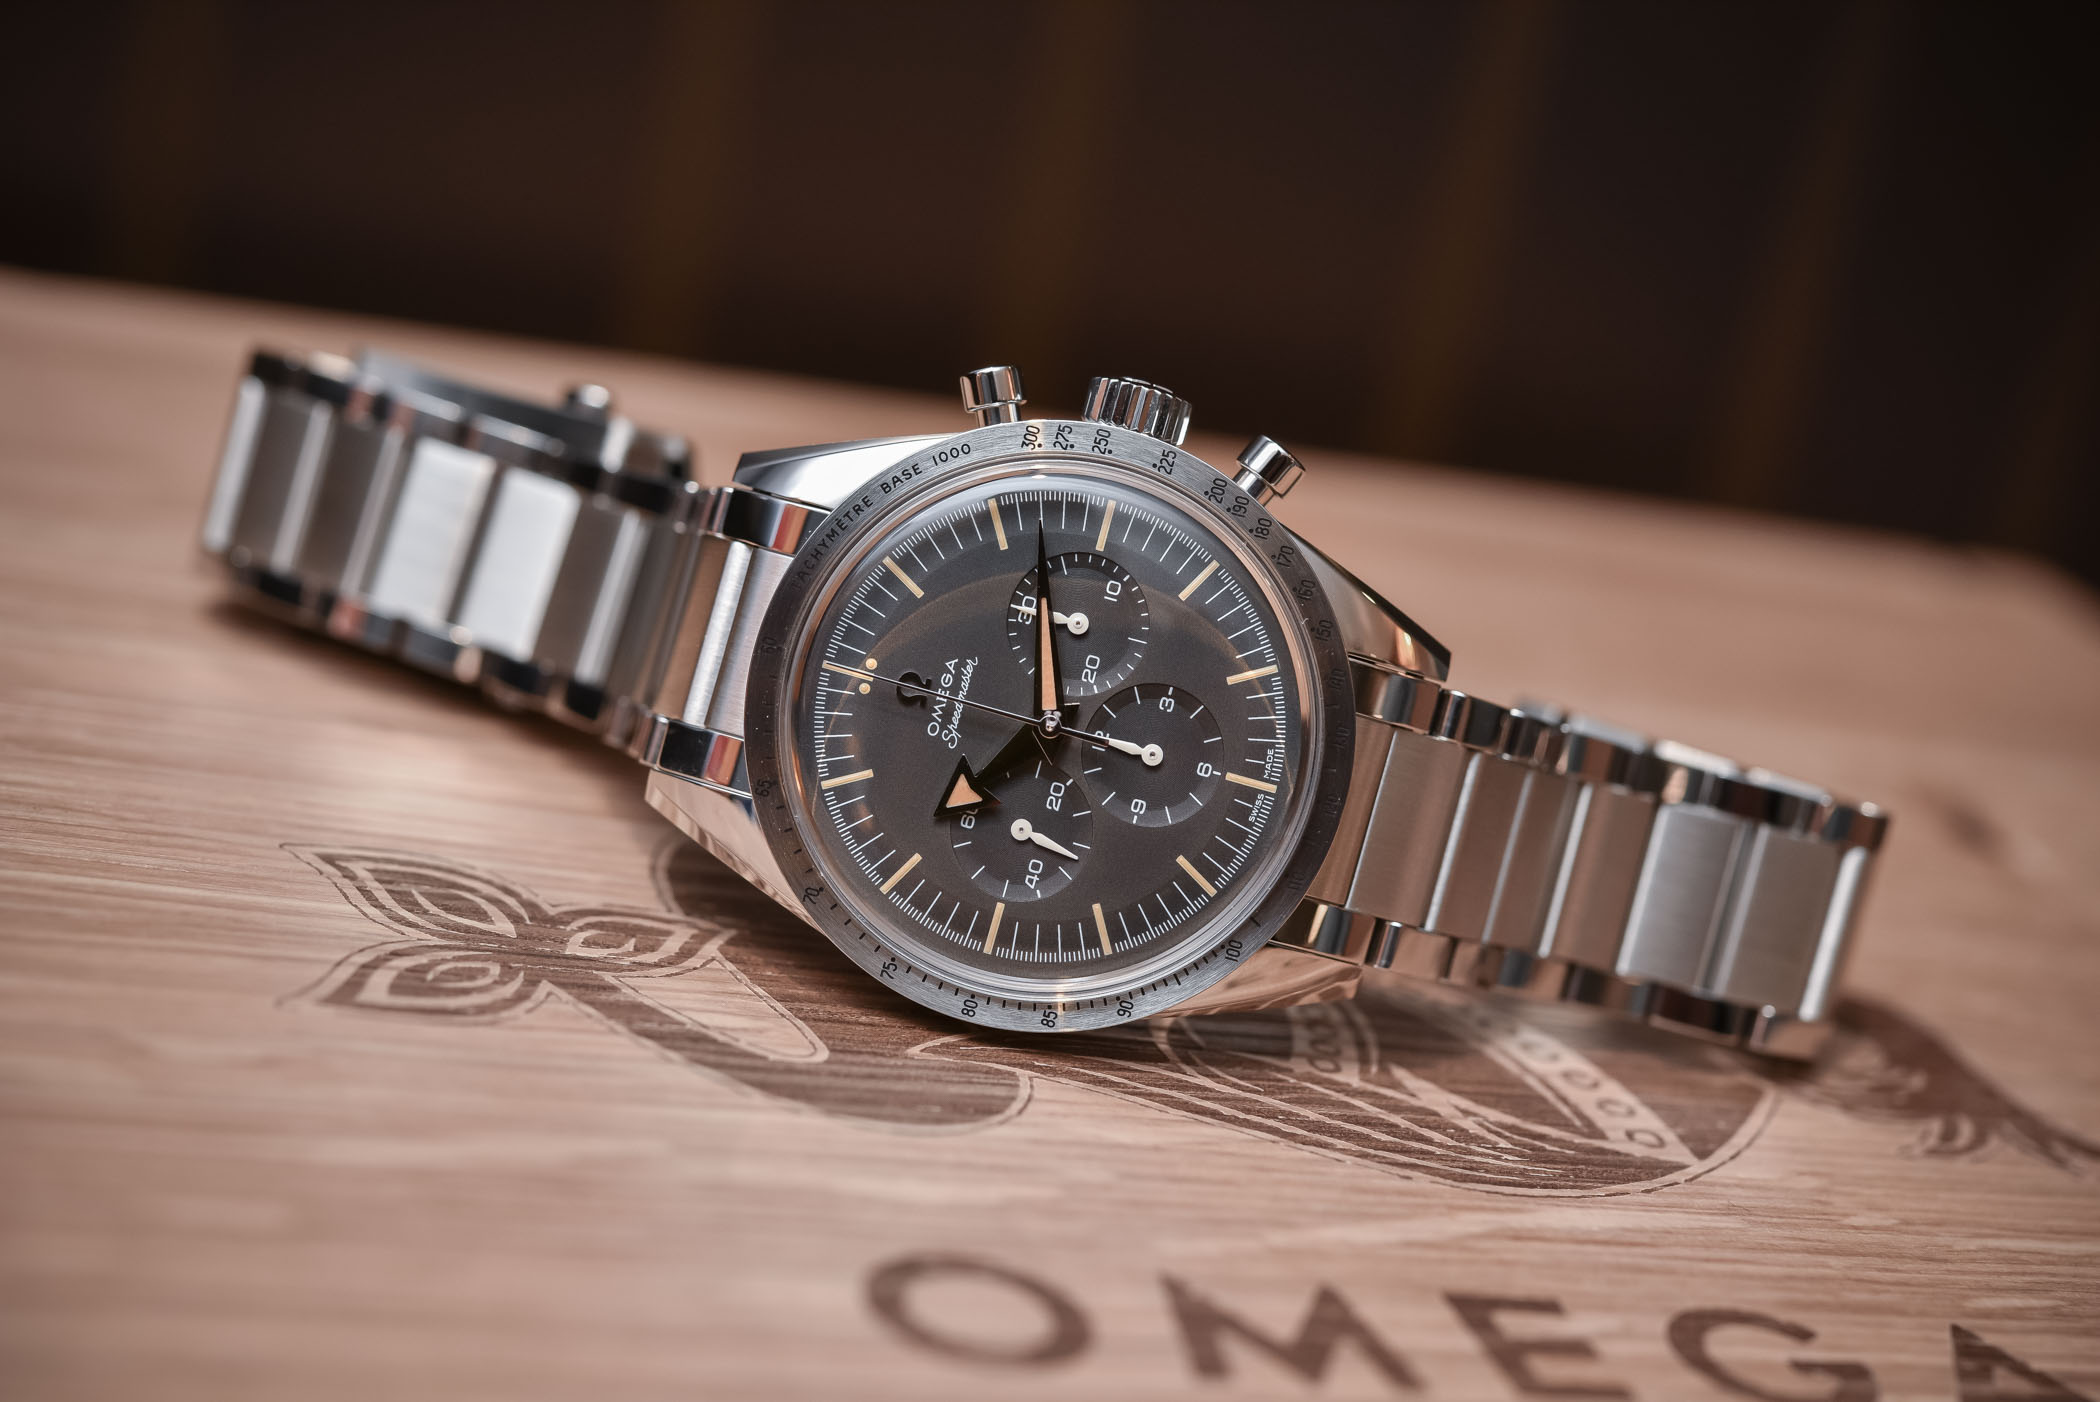 c49b353cea1 Buying Guide - The New Watches of 2017 to Buy with 10